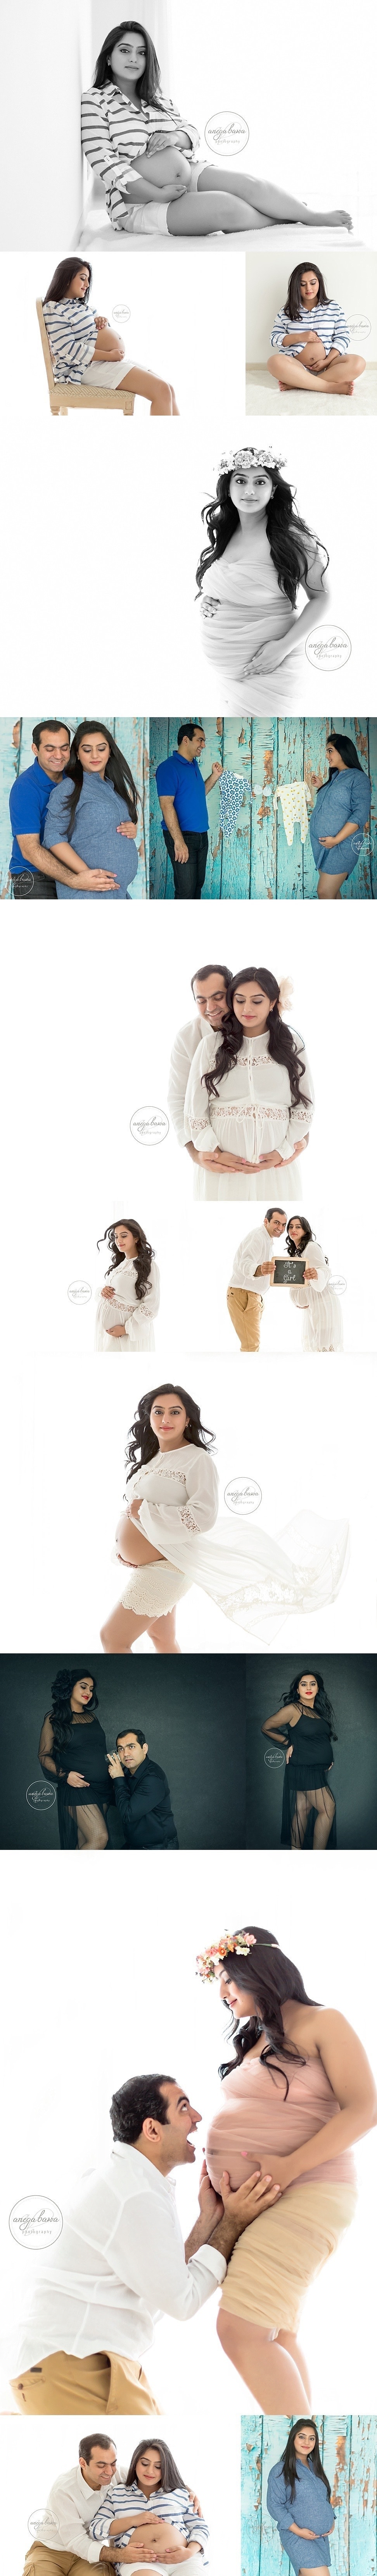 maternity_session_030_gurgaon_maternity_photographer_noida_pregnancy